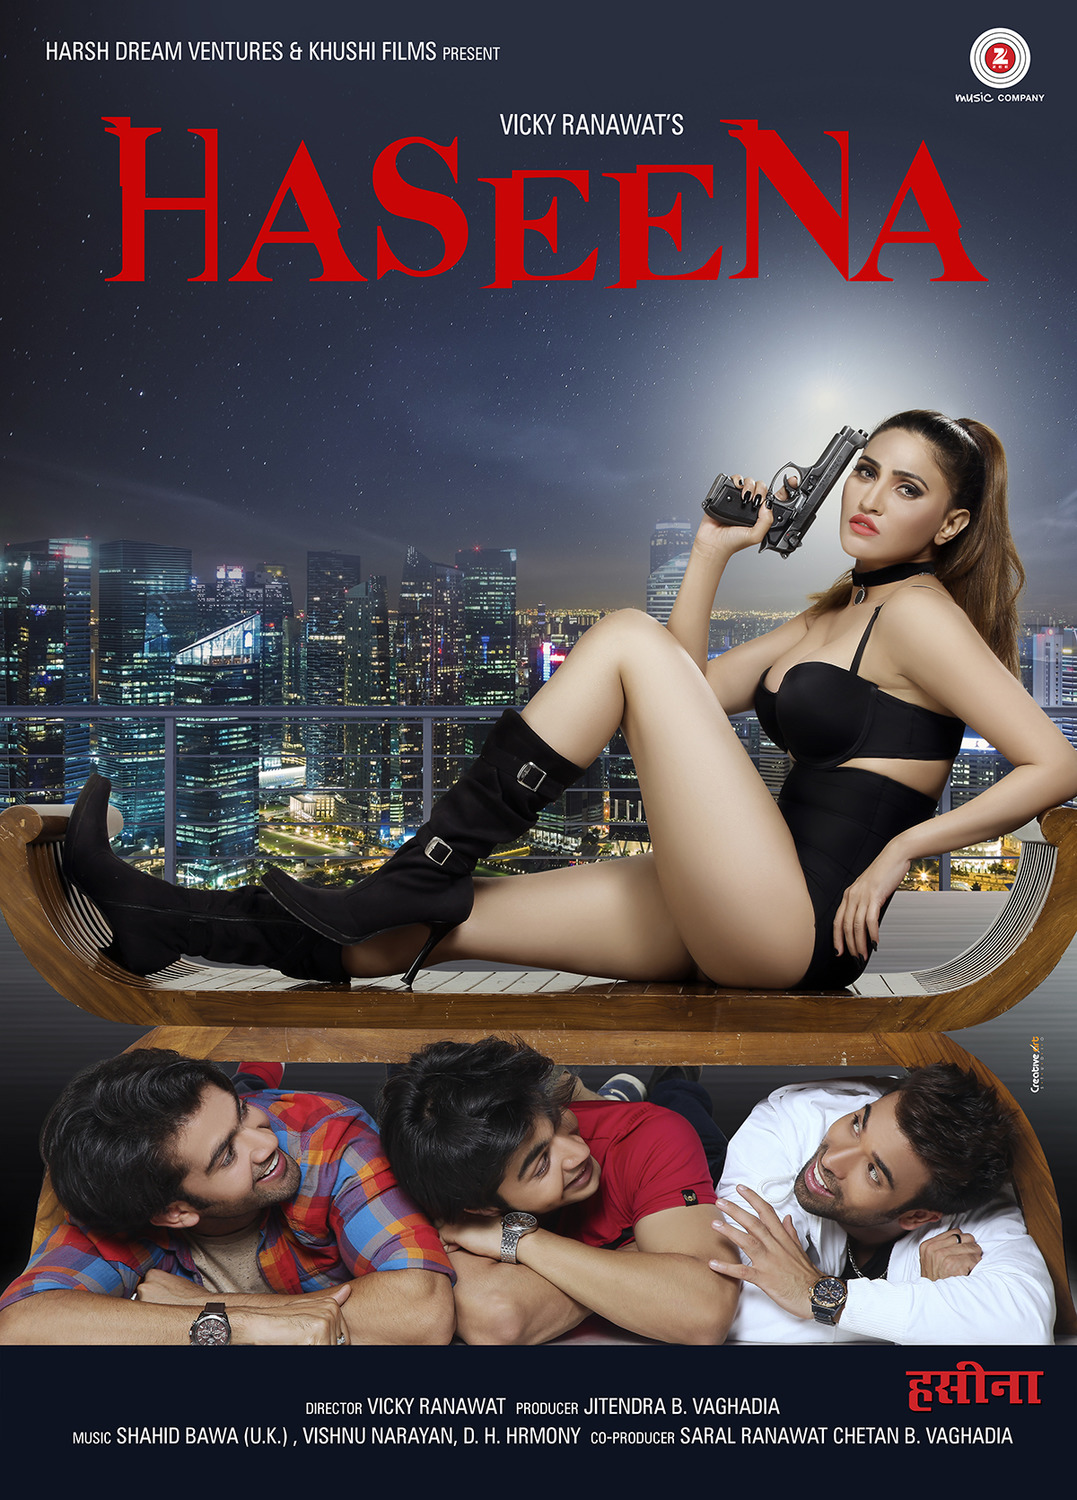 Haseena (2018) Hindi 720p HDRip 1GB